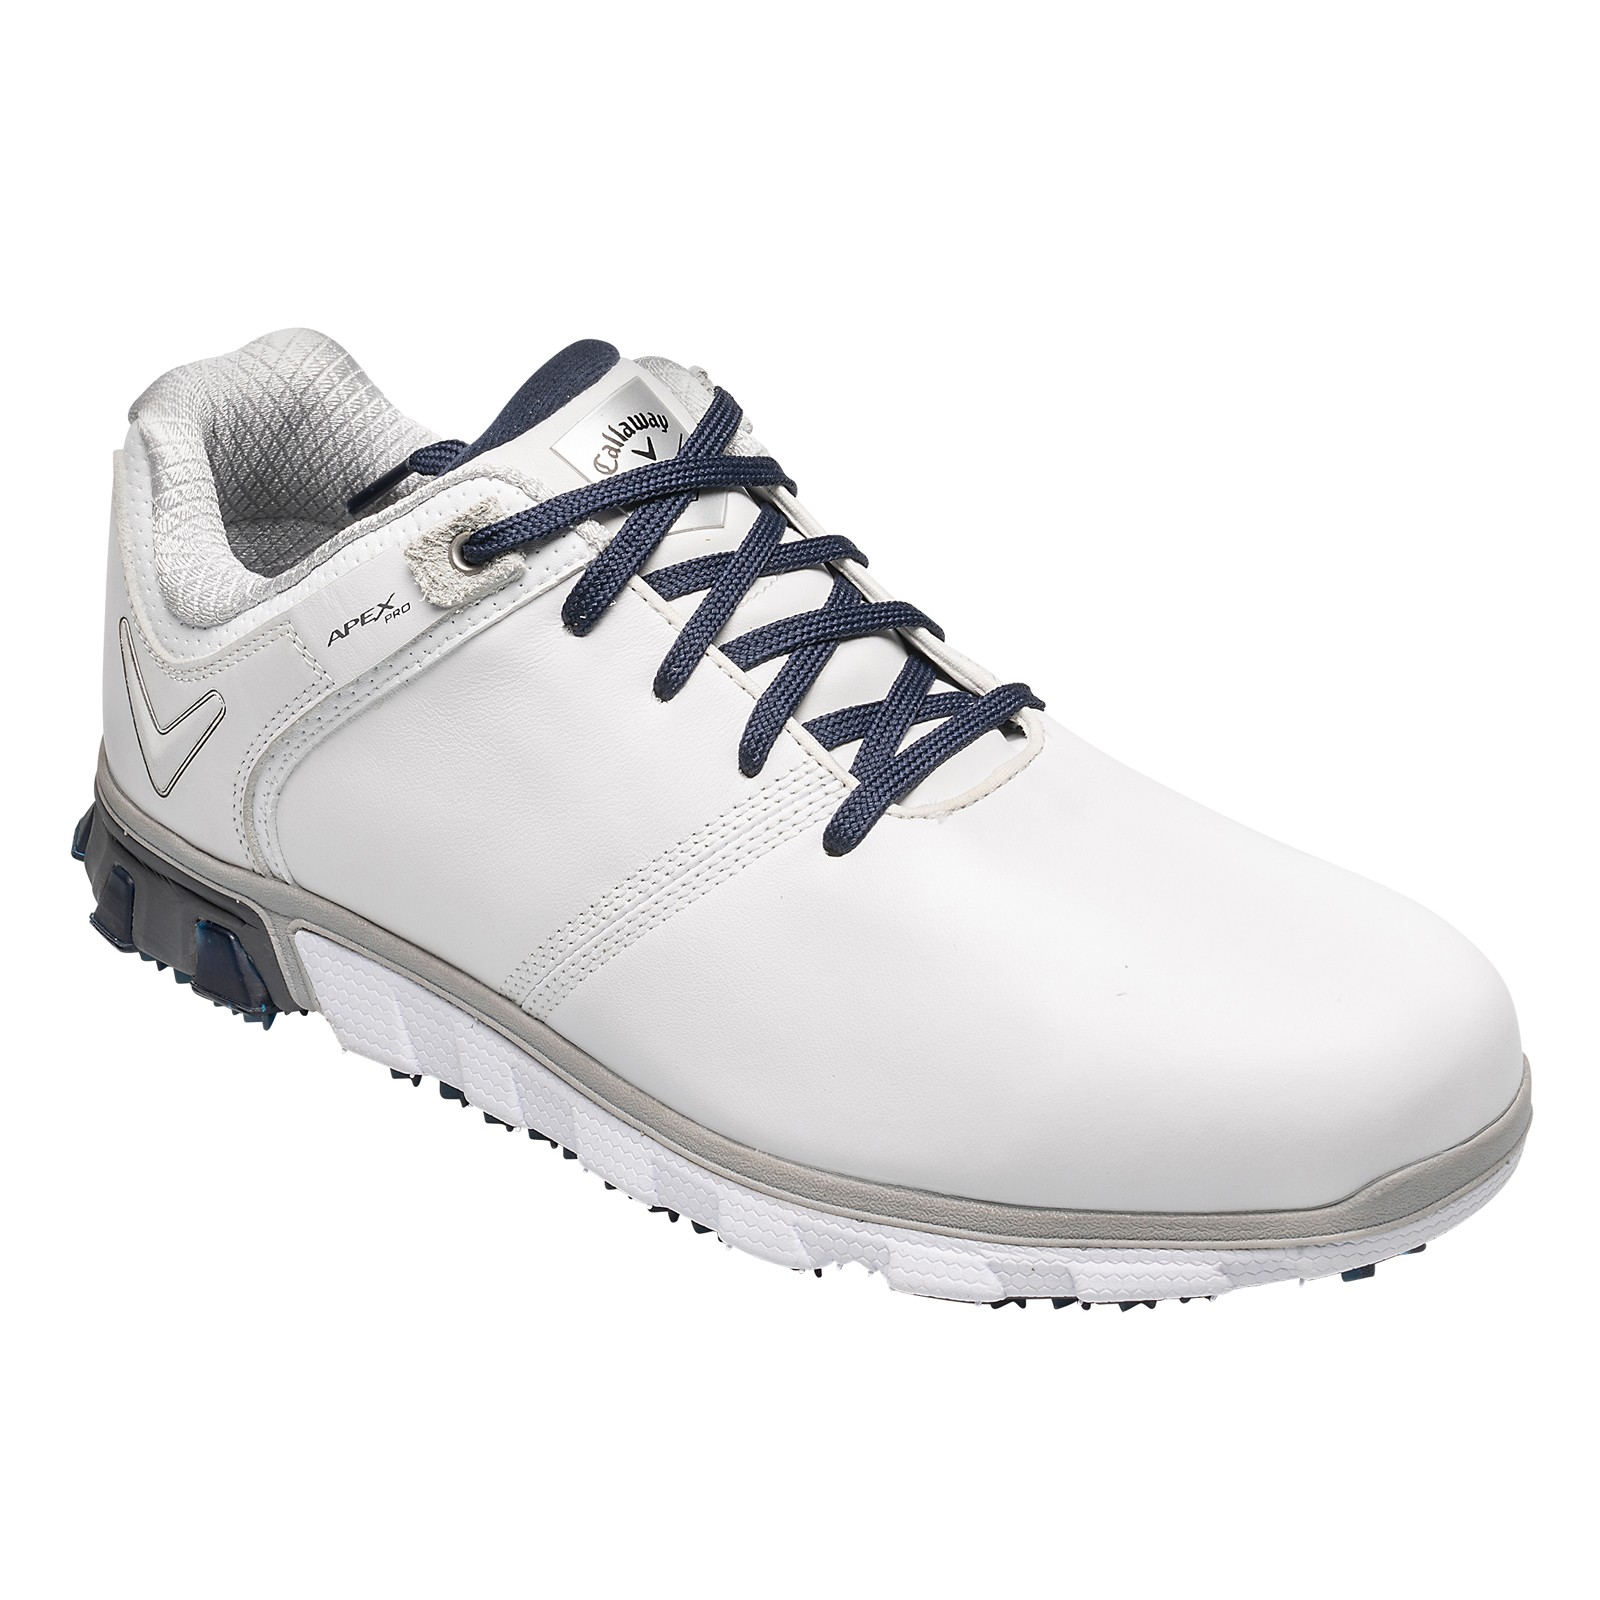 Callaway Apex Pro Golf Shoes